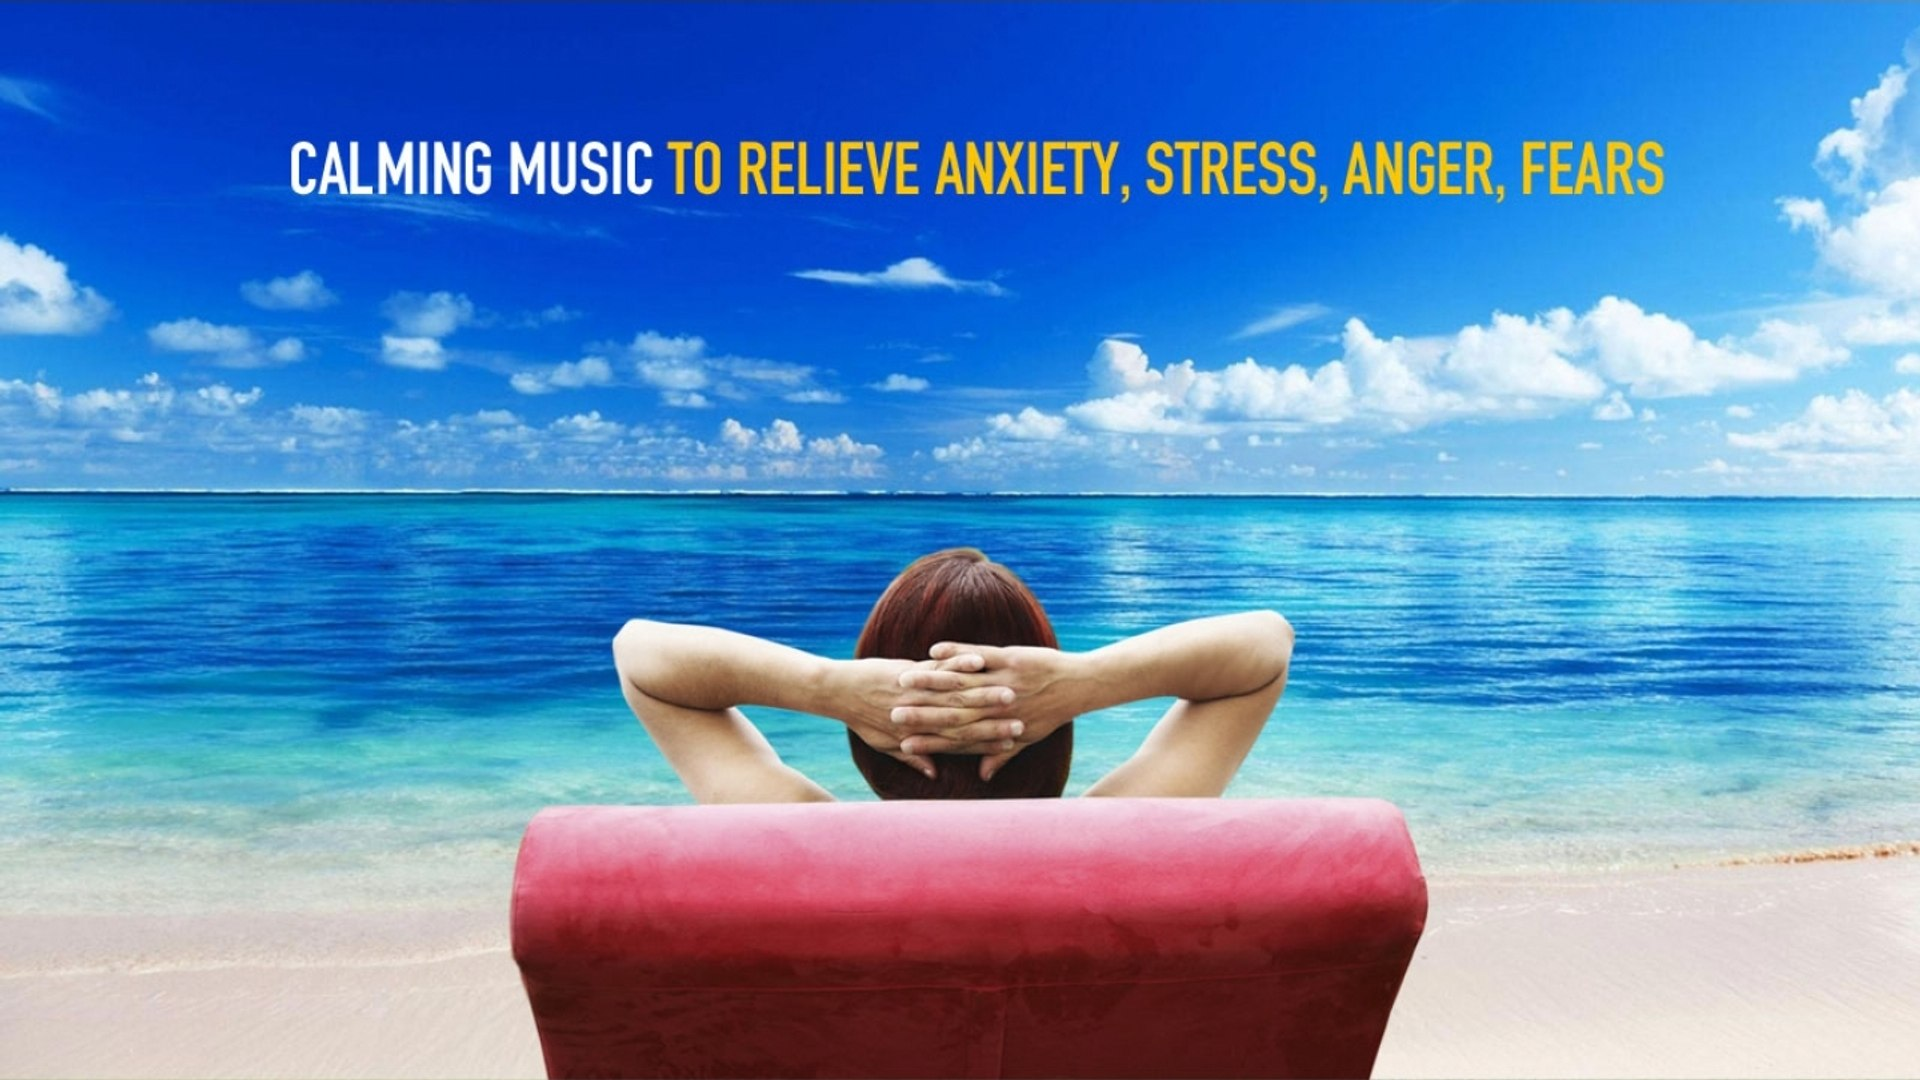 Calming Music to Relieve Anxiety, Stress, Anger, Fears - Relaxing Soundscapes